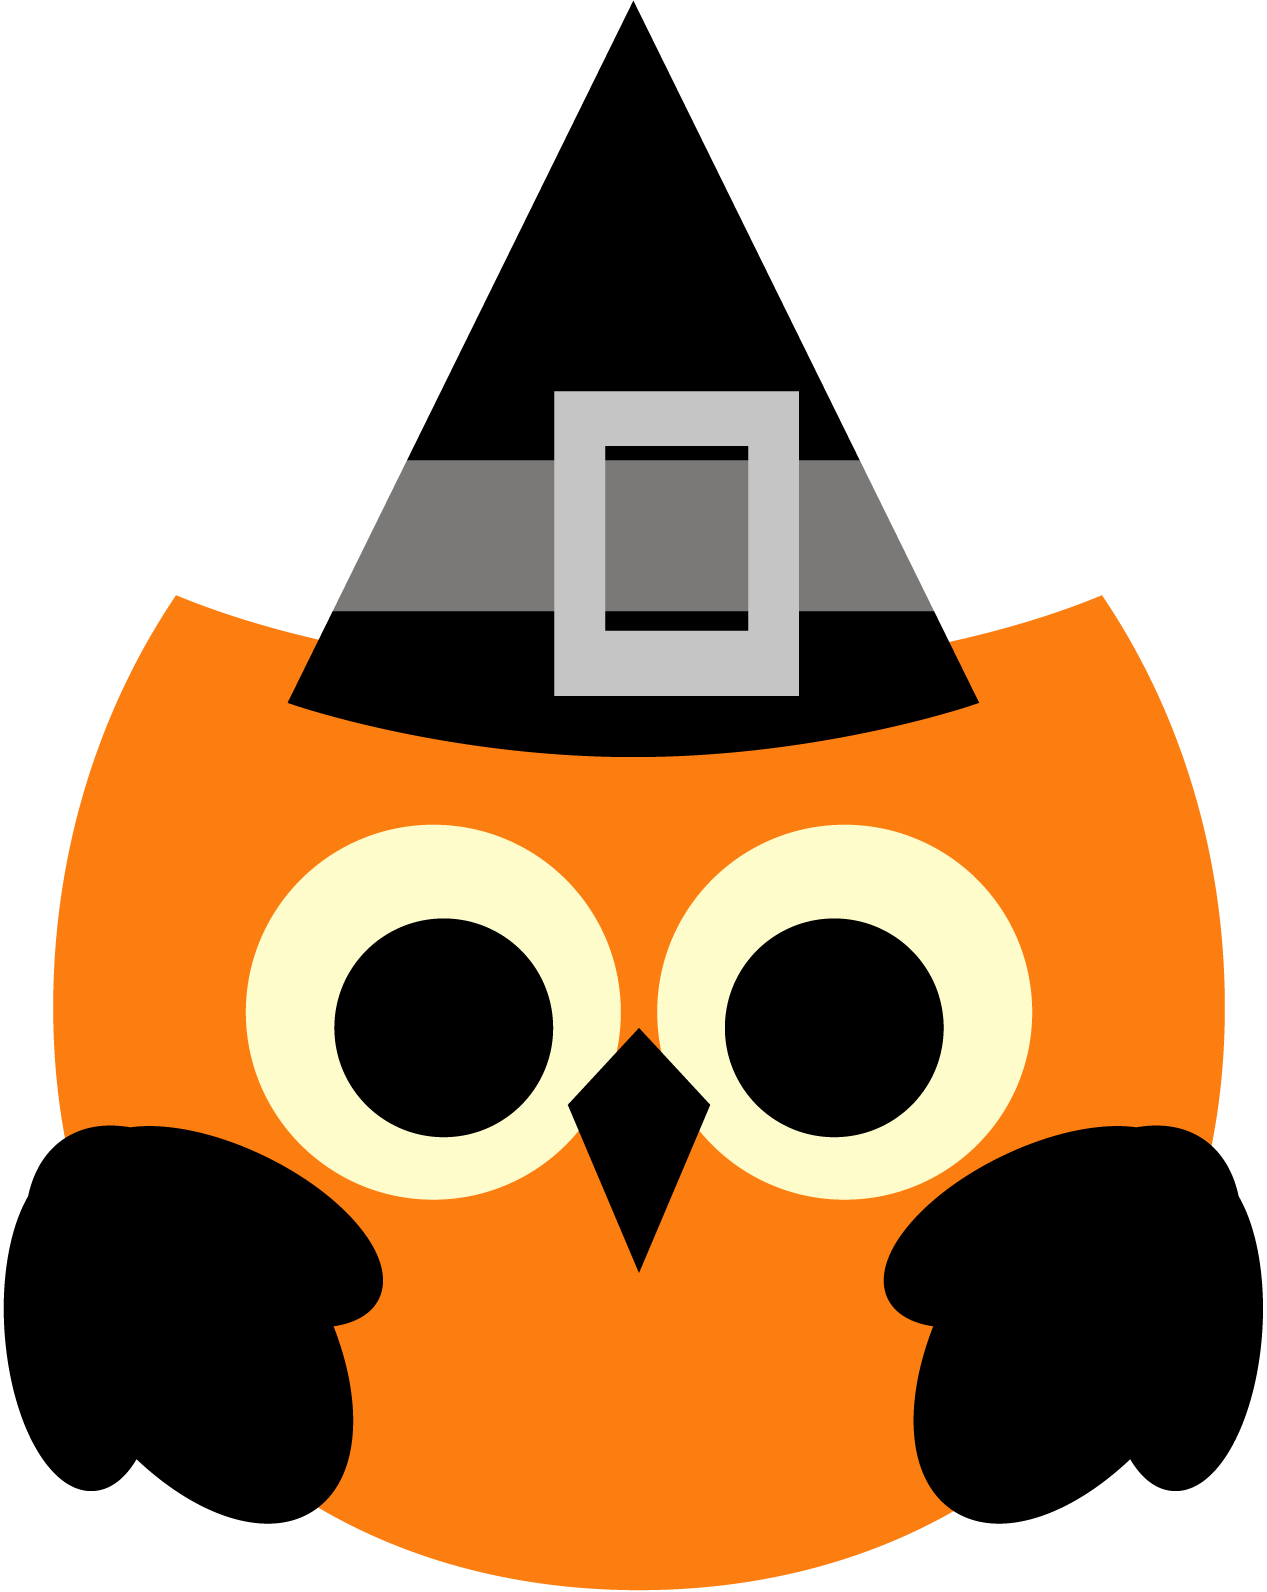 Clip Art Halloween Owl Clip Art halloween owl clipart kid if you need more cute clip art for your creations make sure